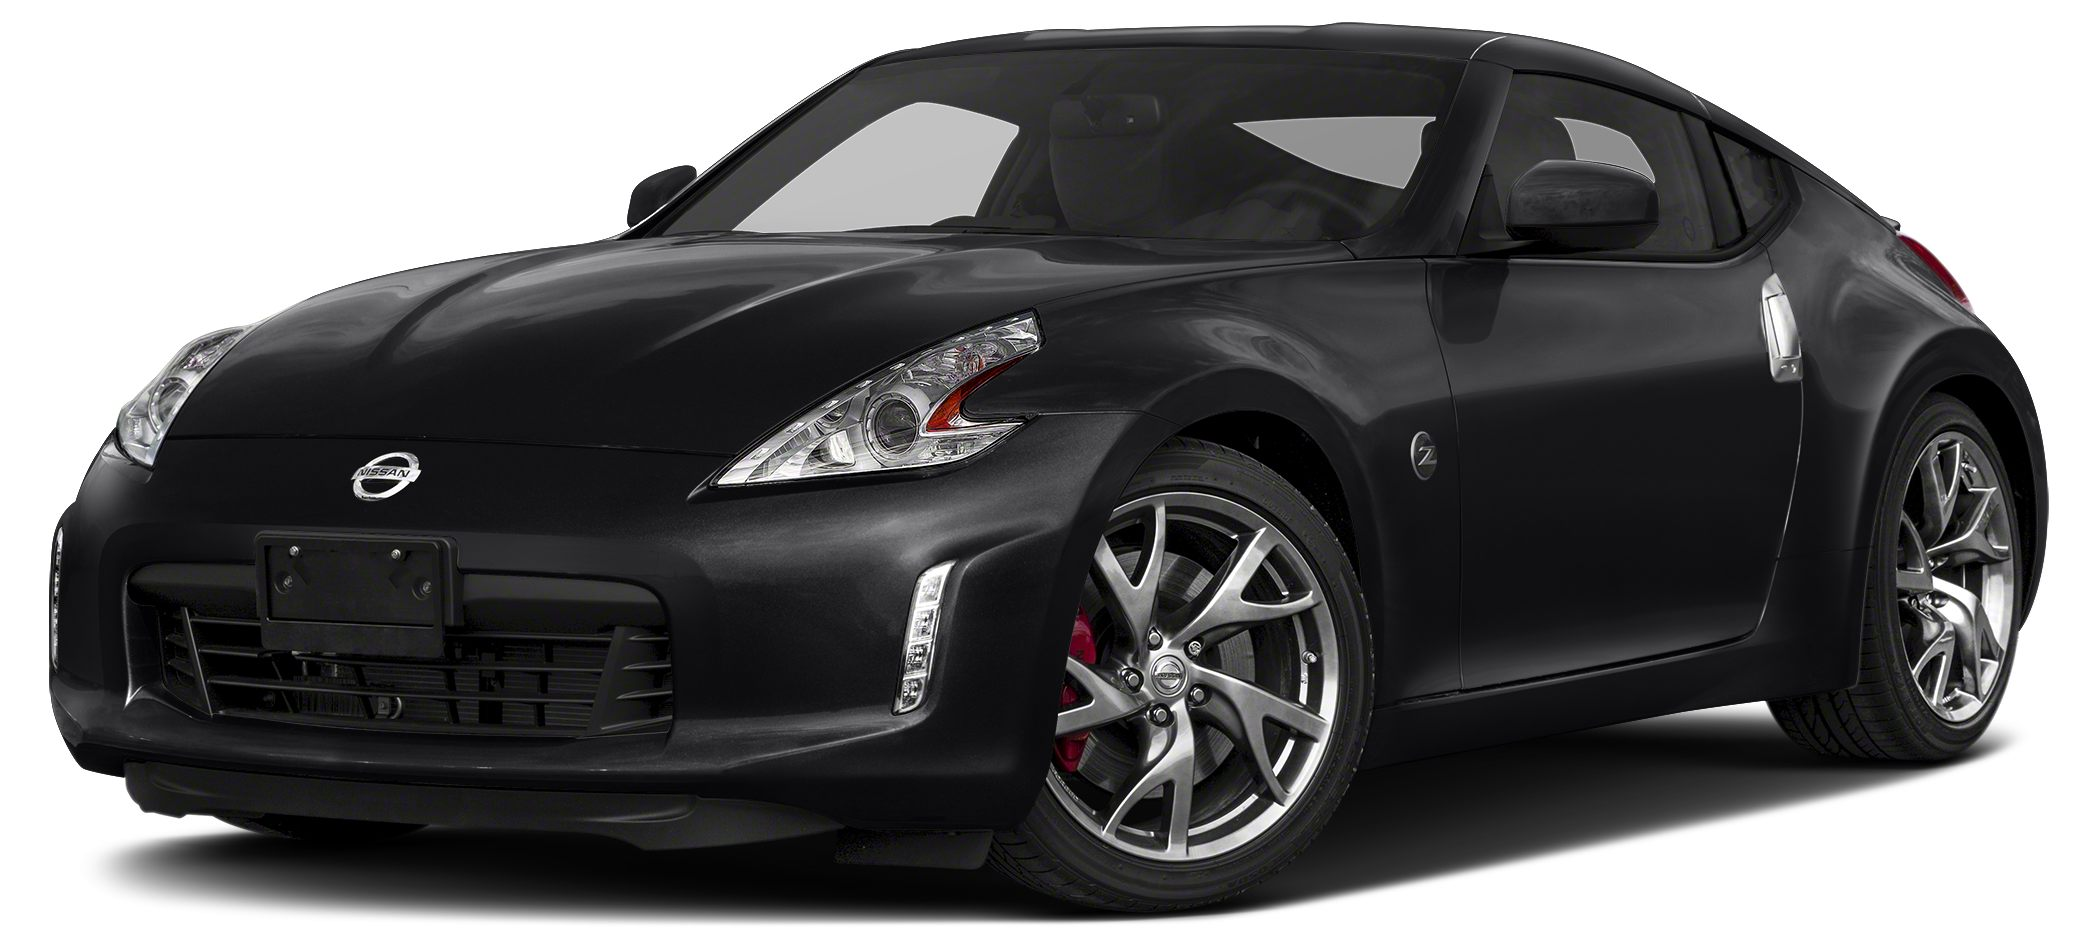 2016 Nissan 370Z Base Looking for an amazing value Introducing the 2016 Nissan 370Z It comes equ